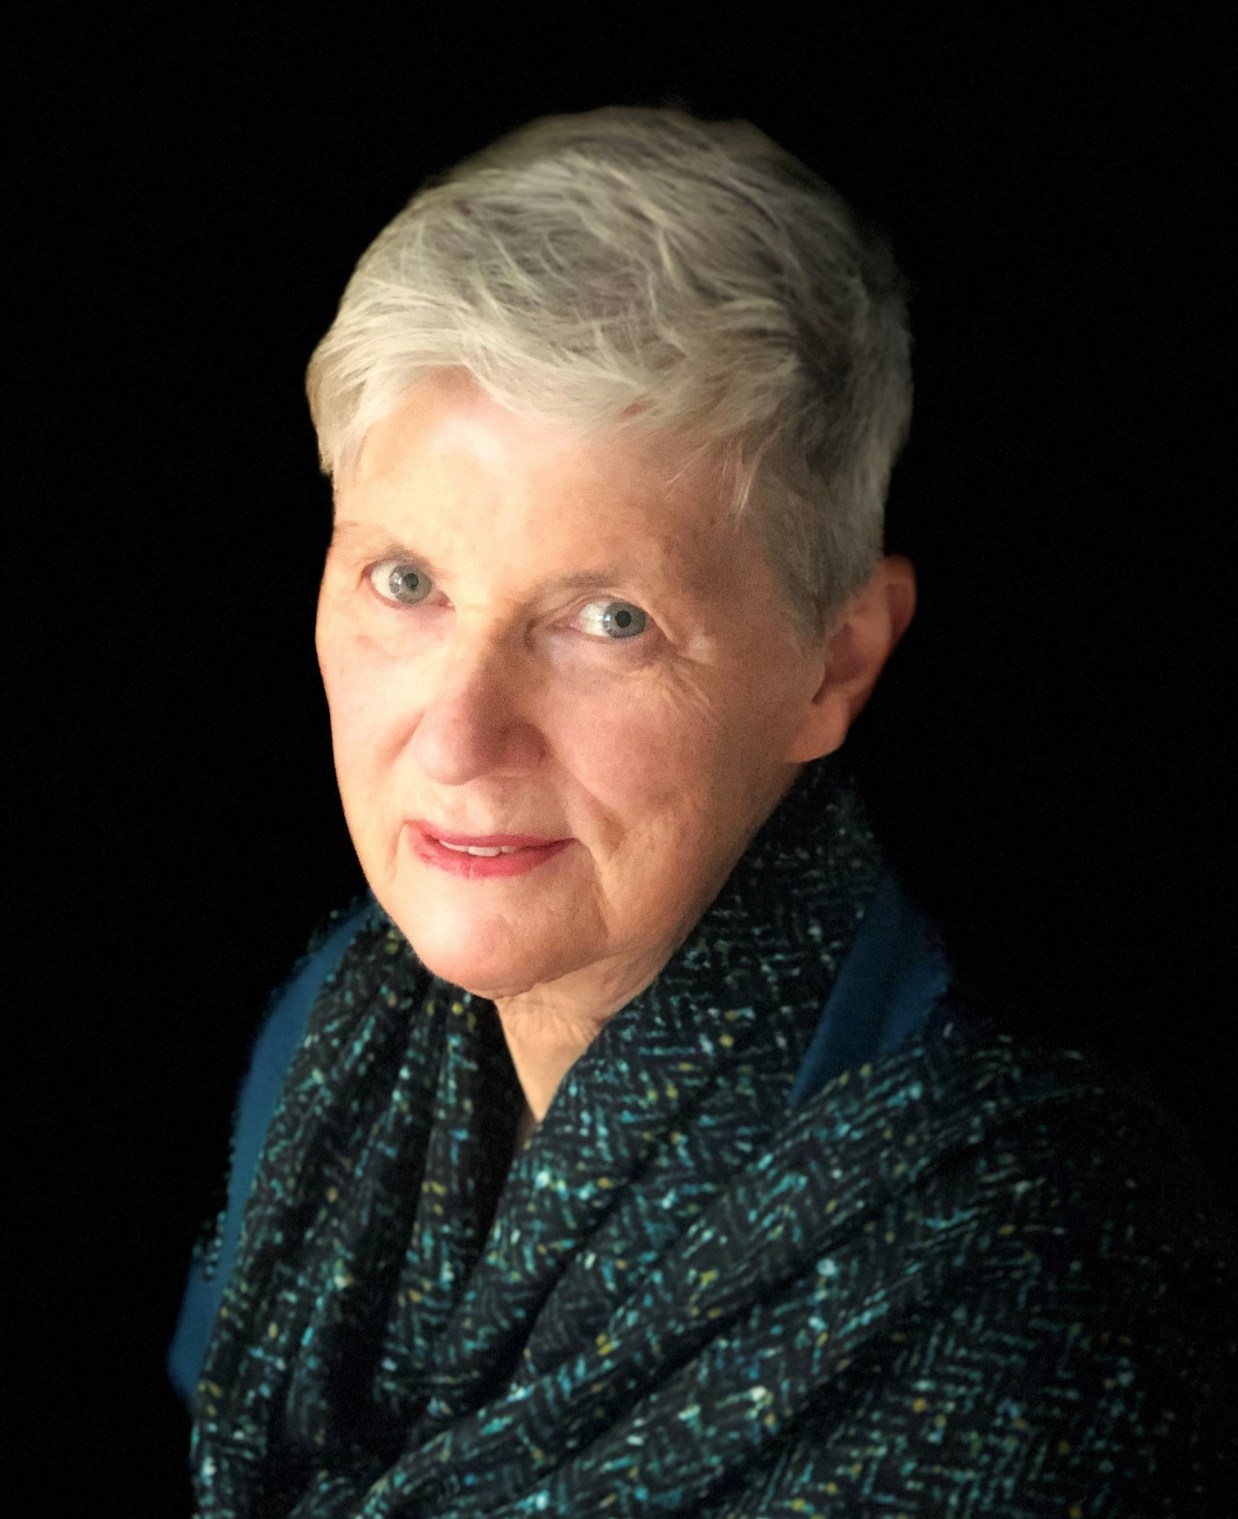 <strong>DIANA BLOM - Composer</strong>